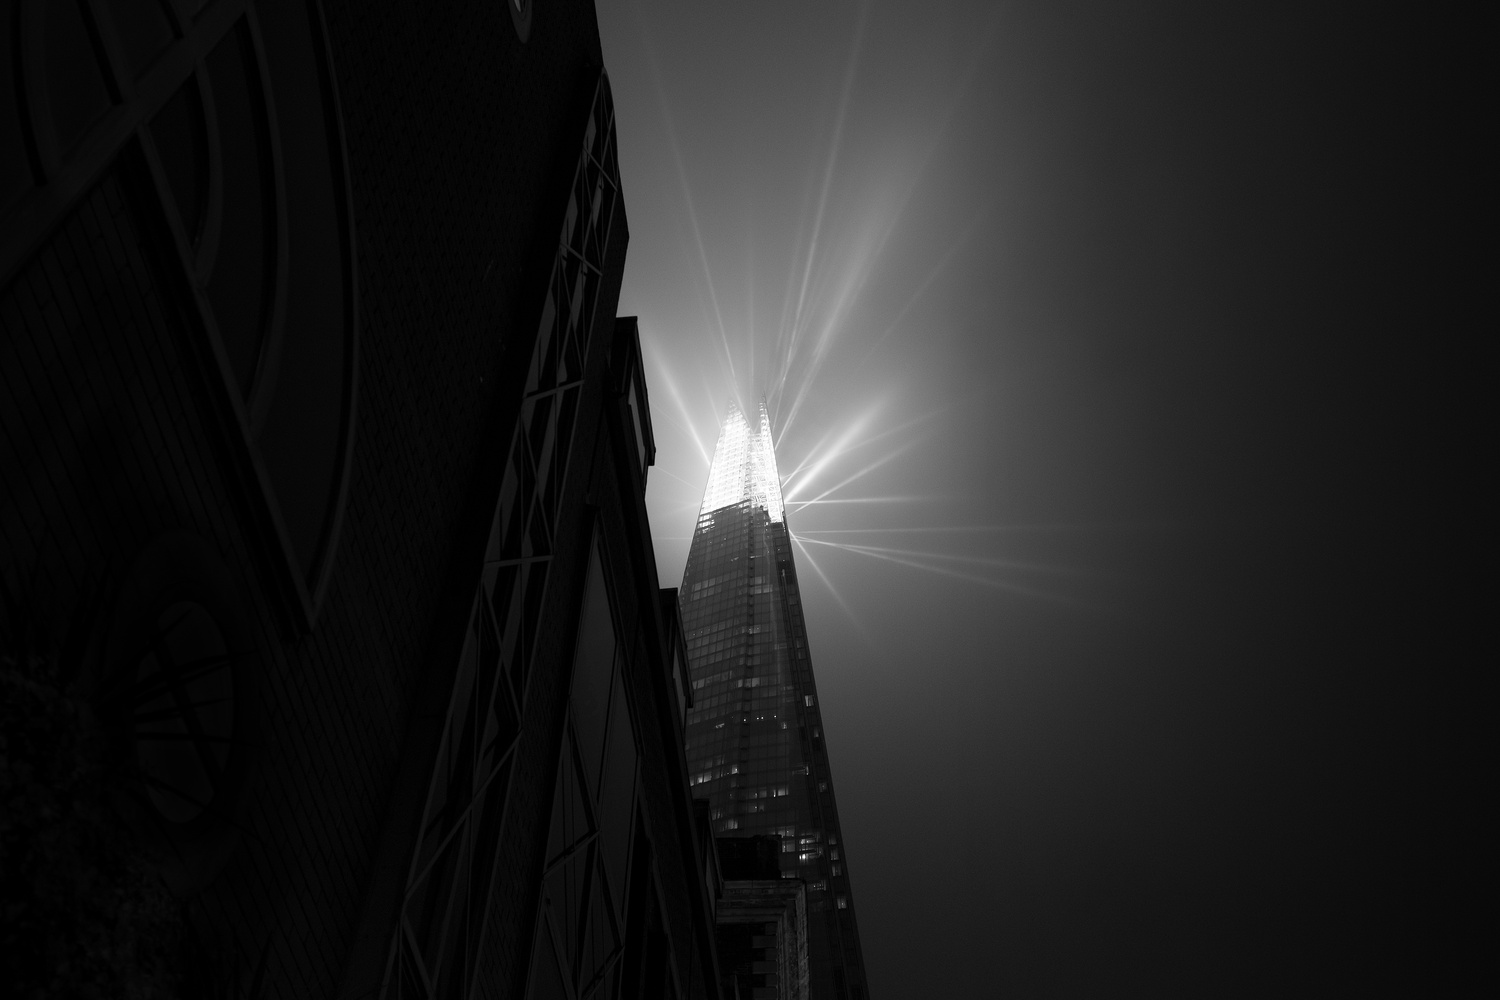 The Shard by Jon Buttle-Smith